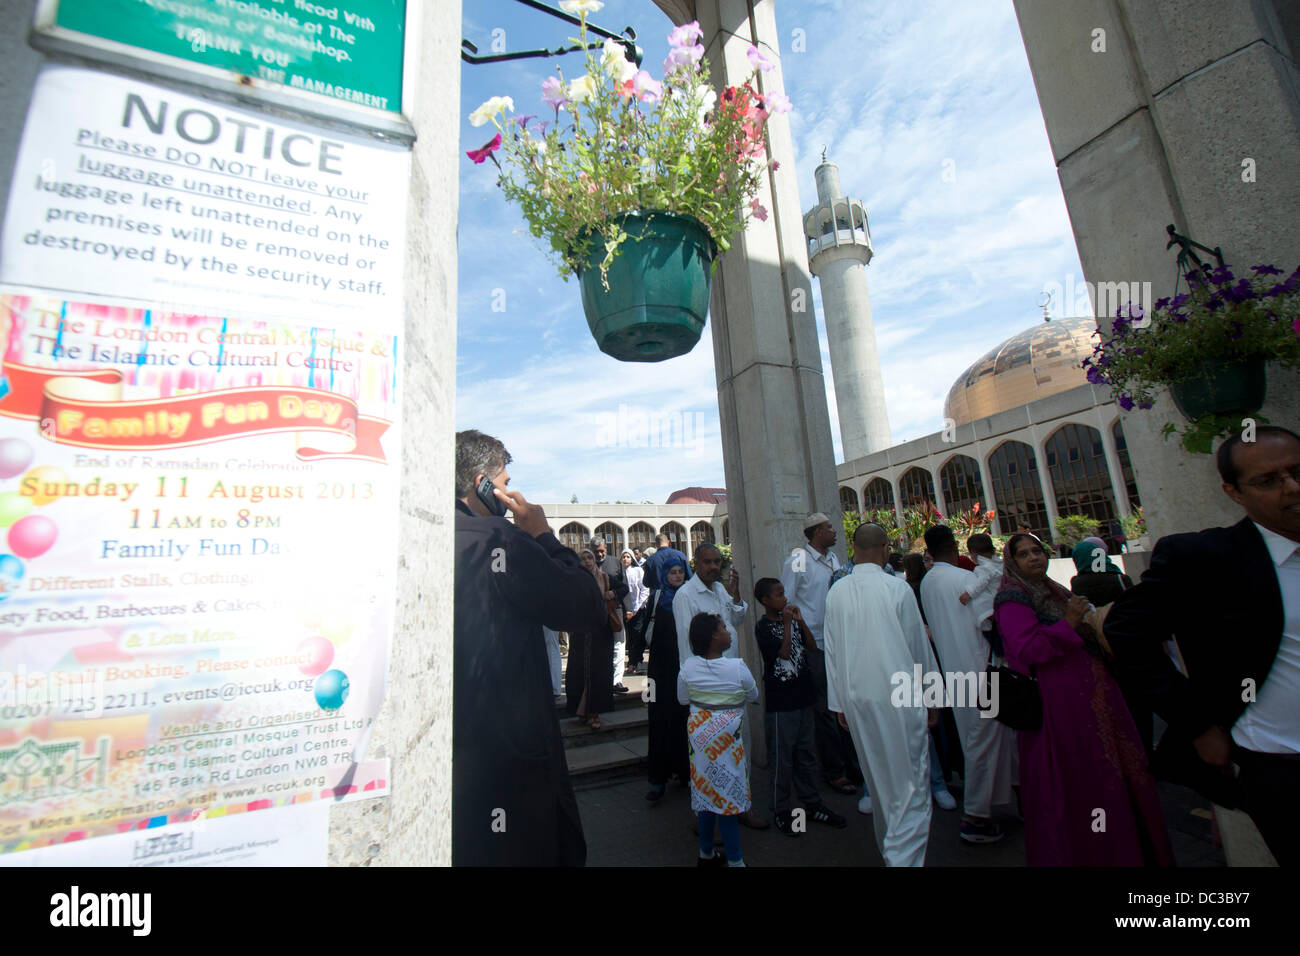 London, UK. 8th August 2013.  Muslim families  celebrate Eid at the Regent's Mosque in London which marks the - Stock Image